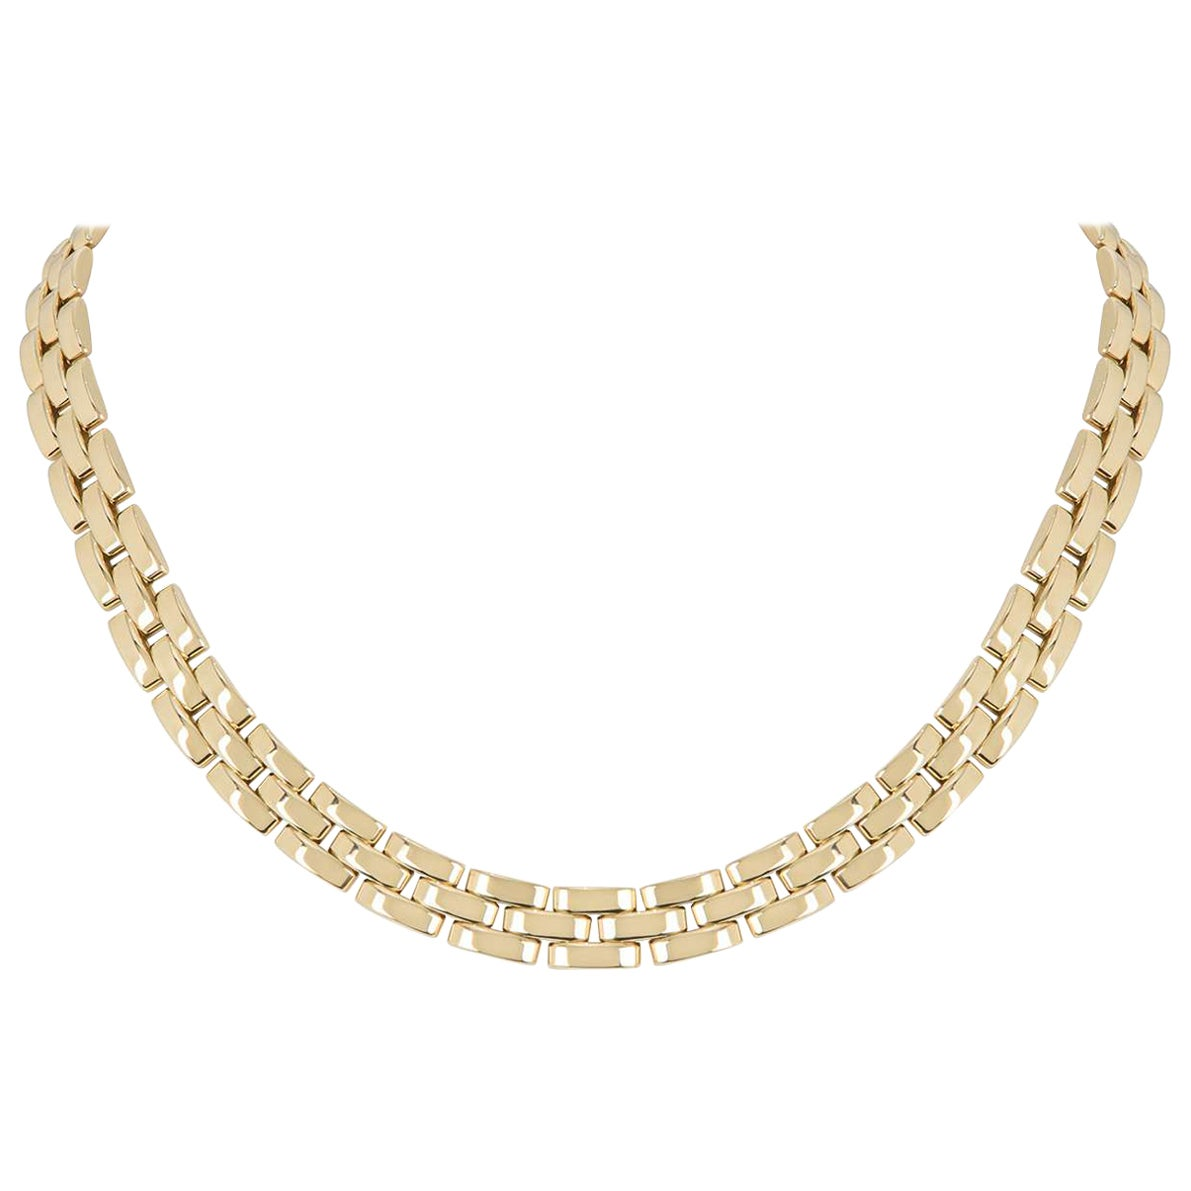 Cartier Yellow Gold Maillon Panthere Necklace